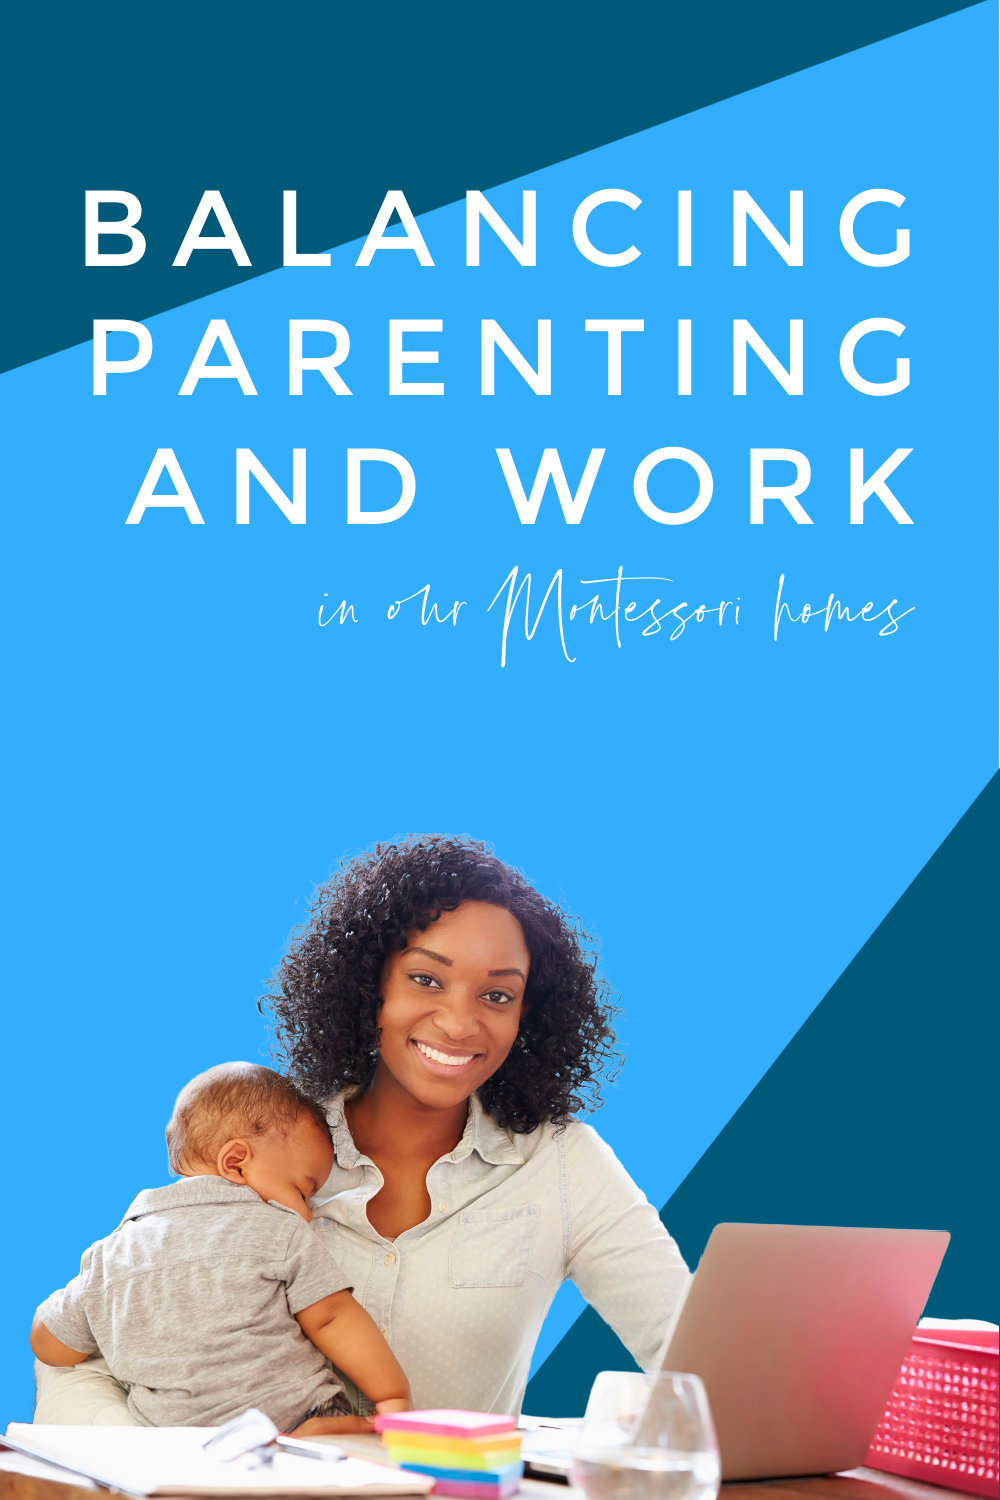 In this Montessori parenting podcast we discuss balancing work and parenting. We share how we balance our kids and working from home and for others.